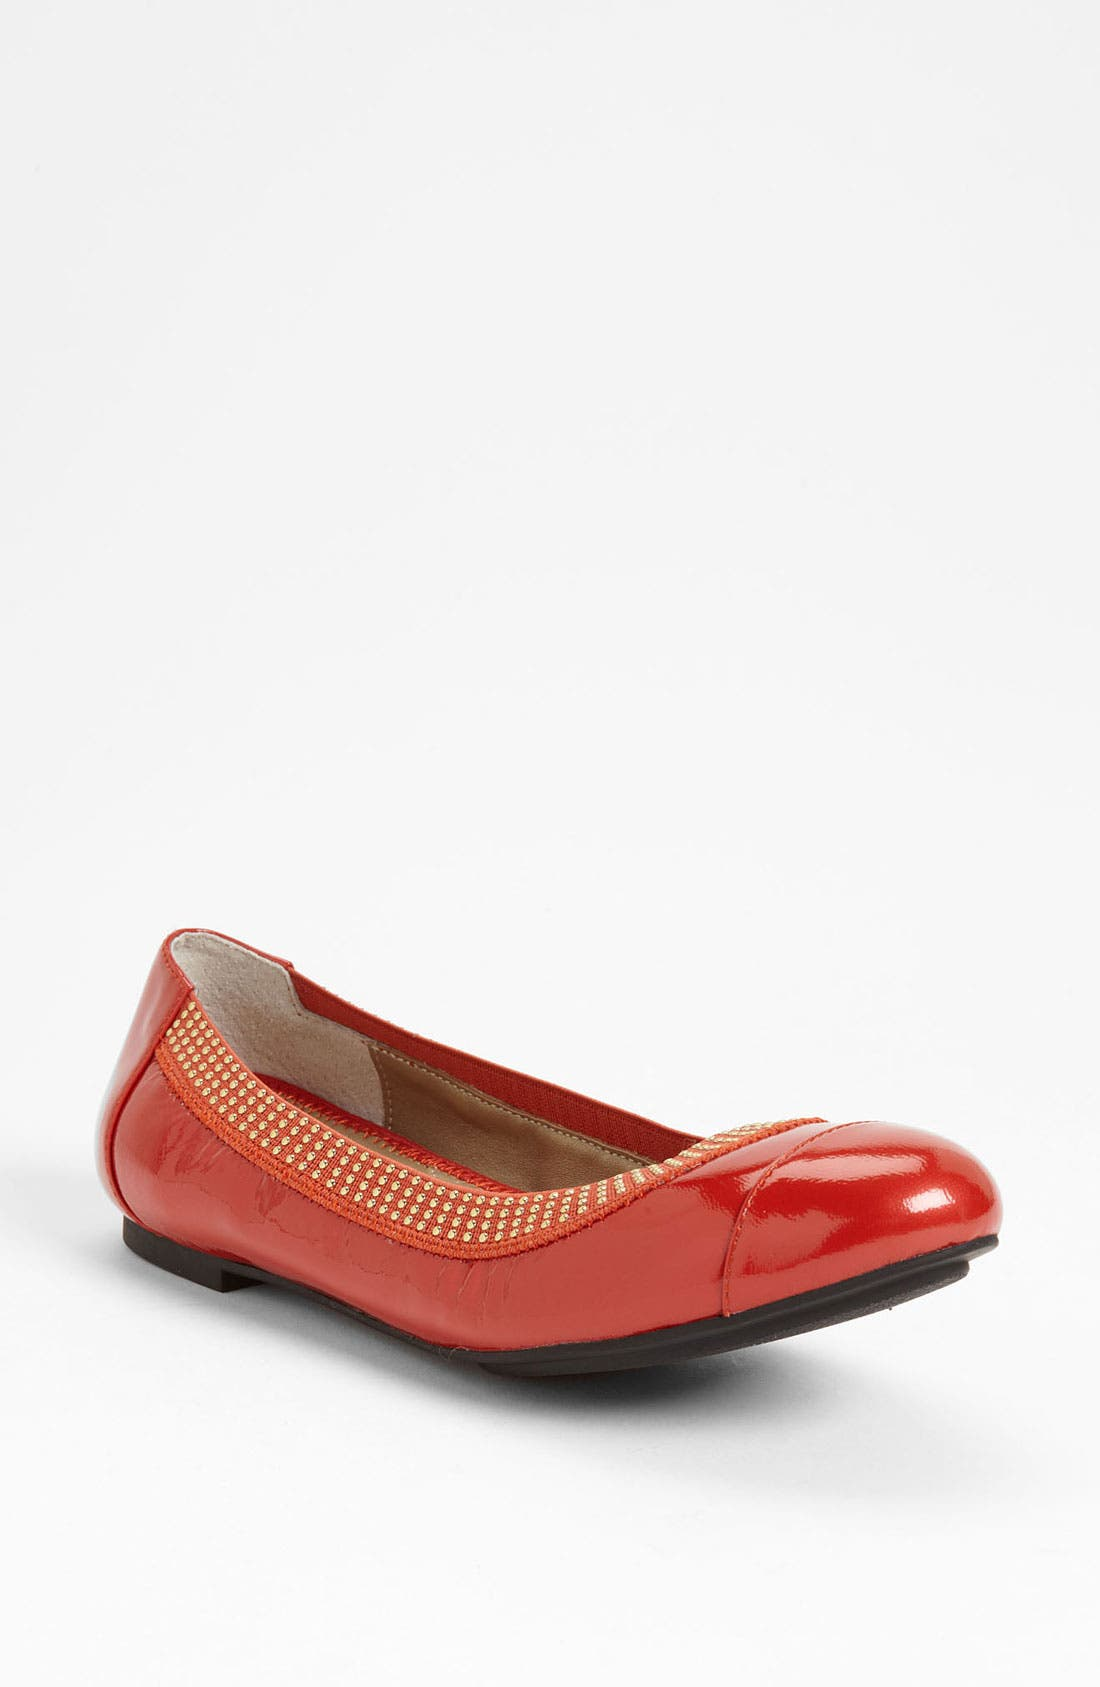 Alternate Image 1 Selected - Me Too 'Kailani' Flat (Special Purchase)